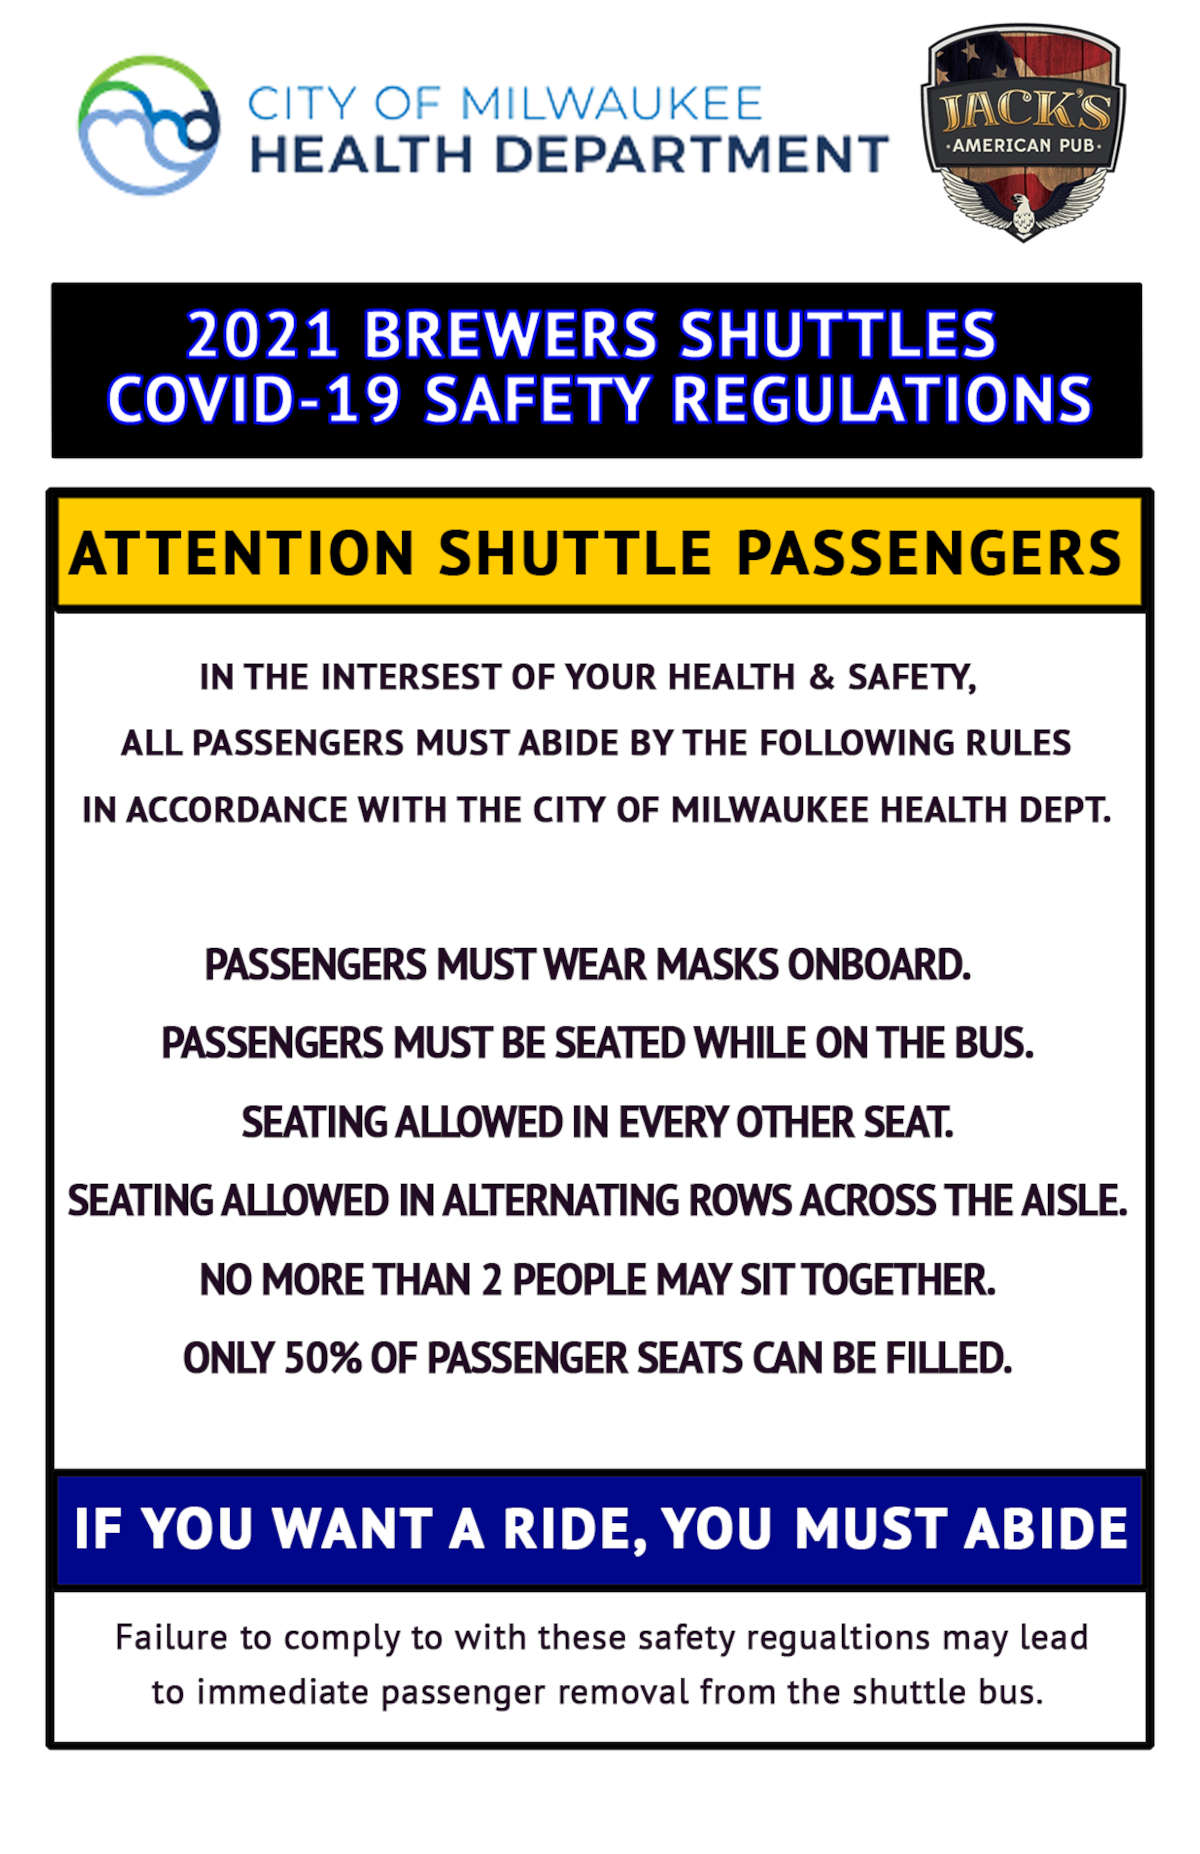 covid-19 safety regulations